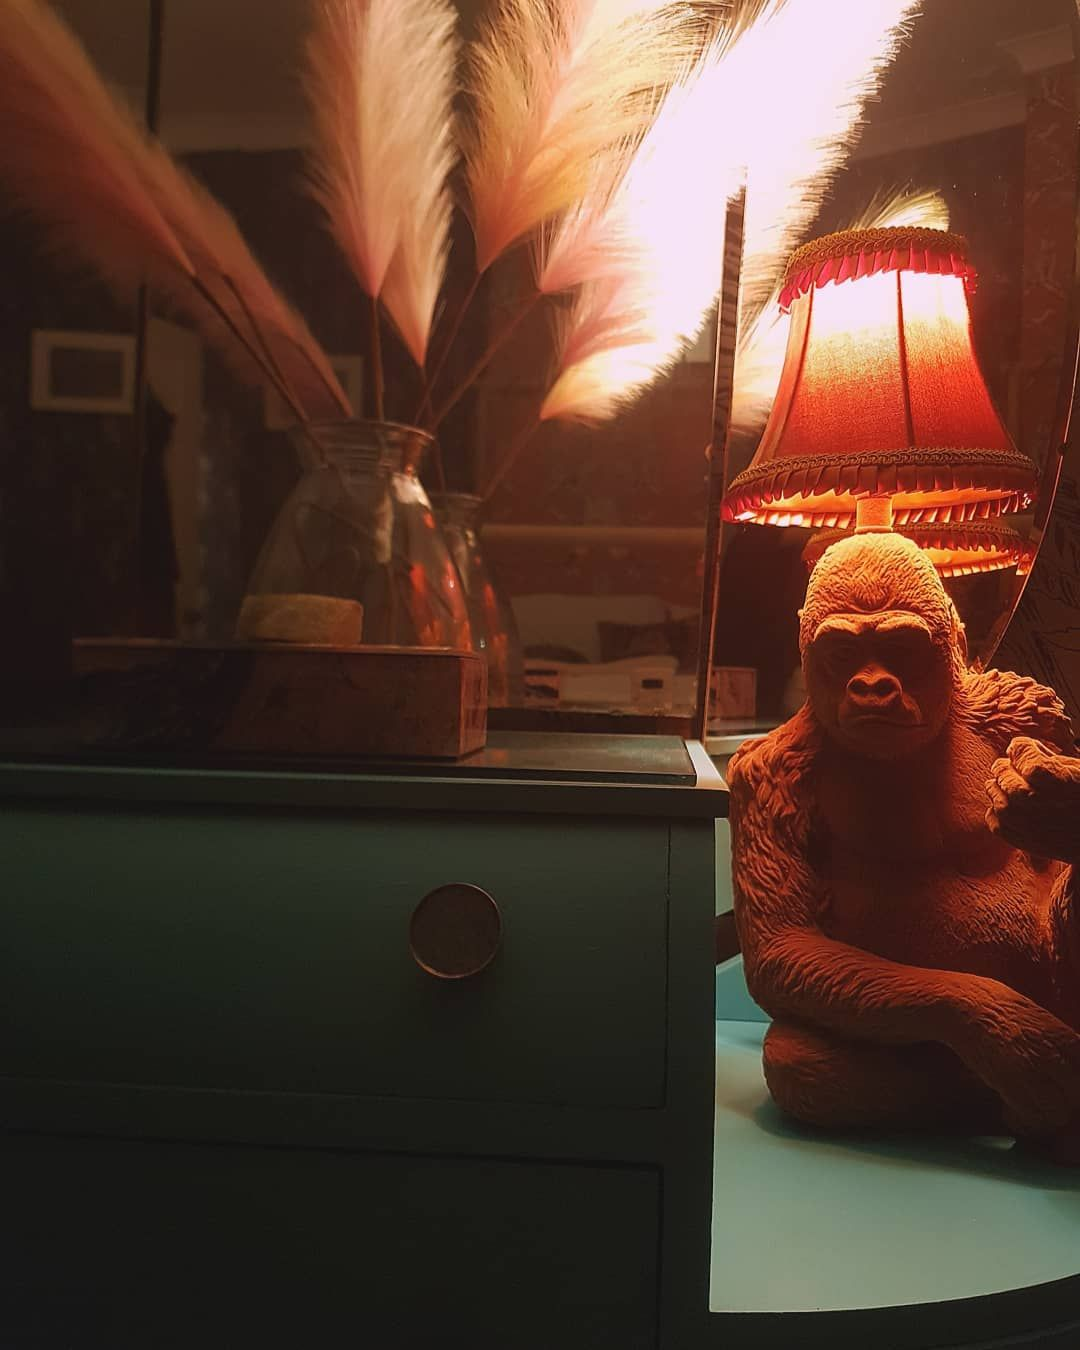 hi! we've had a long day of painting and wallpapering our new dalmatian staircase and doors 😴 however the lighting isn't good enough to show everyone properly sooo.. here's our dresser and orange gorilla 😙 #interioraccount #uniqueinteriors #maximalism #yourlayeredhome #rentedhome #rented #myrentedhomeshare #loveyourrented #diy #interiors #interior #maximalist #maximalistinteriors #diyhome #homeaccount #homedecor #homestyle #abigailahern #home #homesense #bedroom #upcycle #upcycled